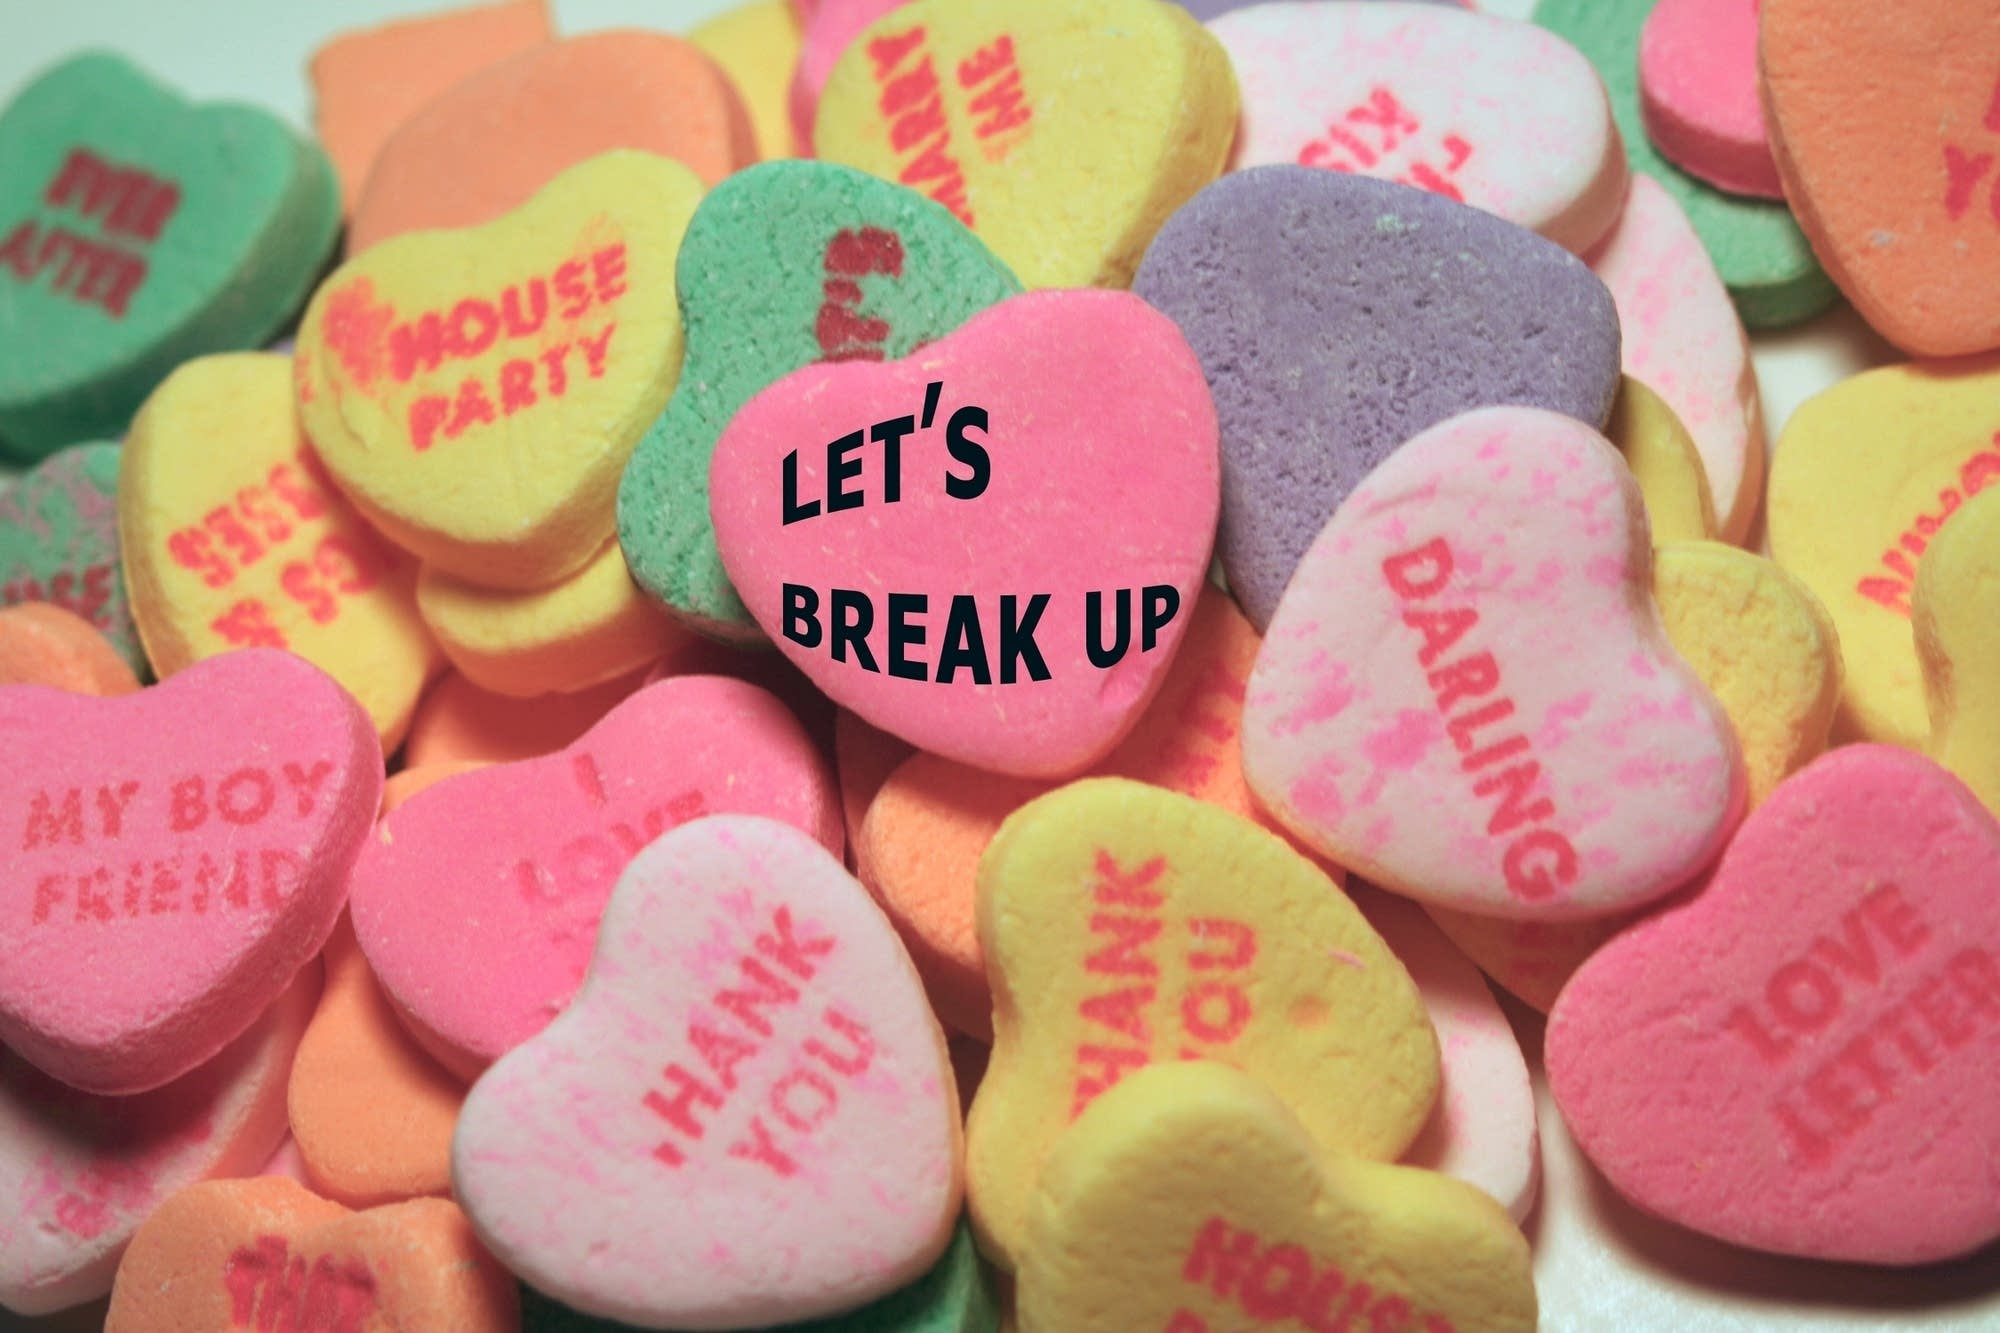 Candy Hearts Break Up